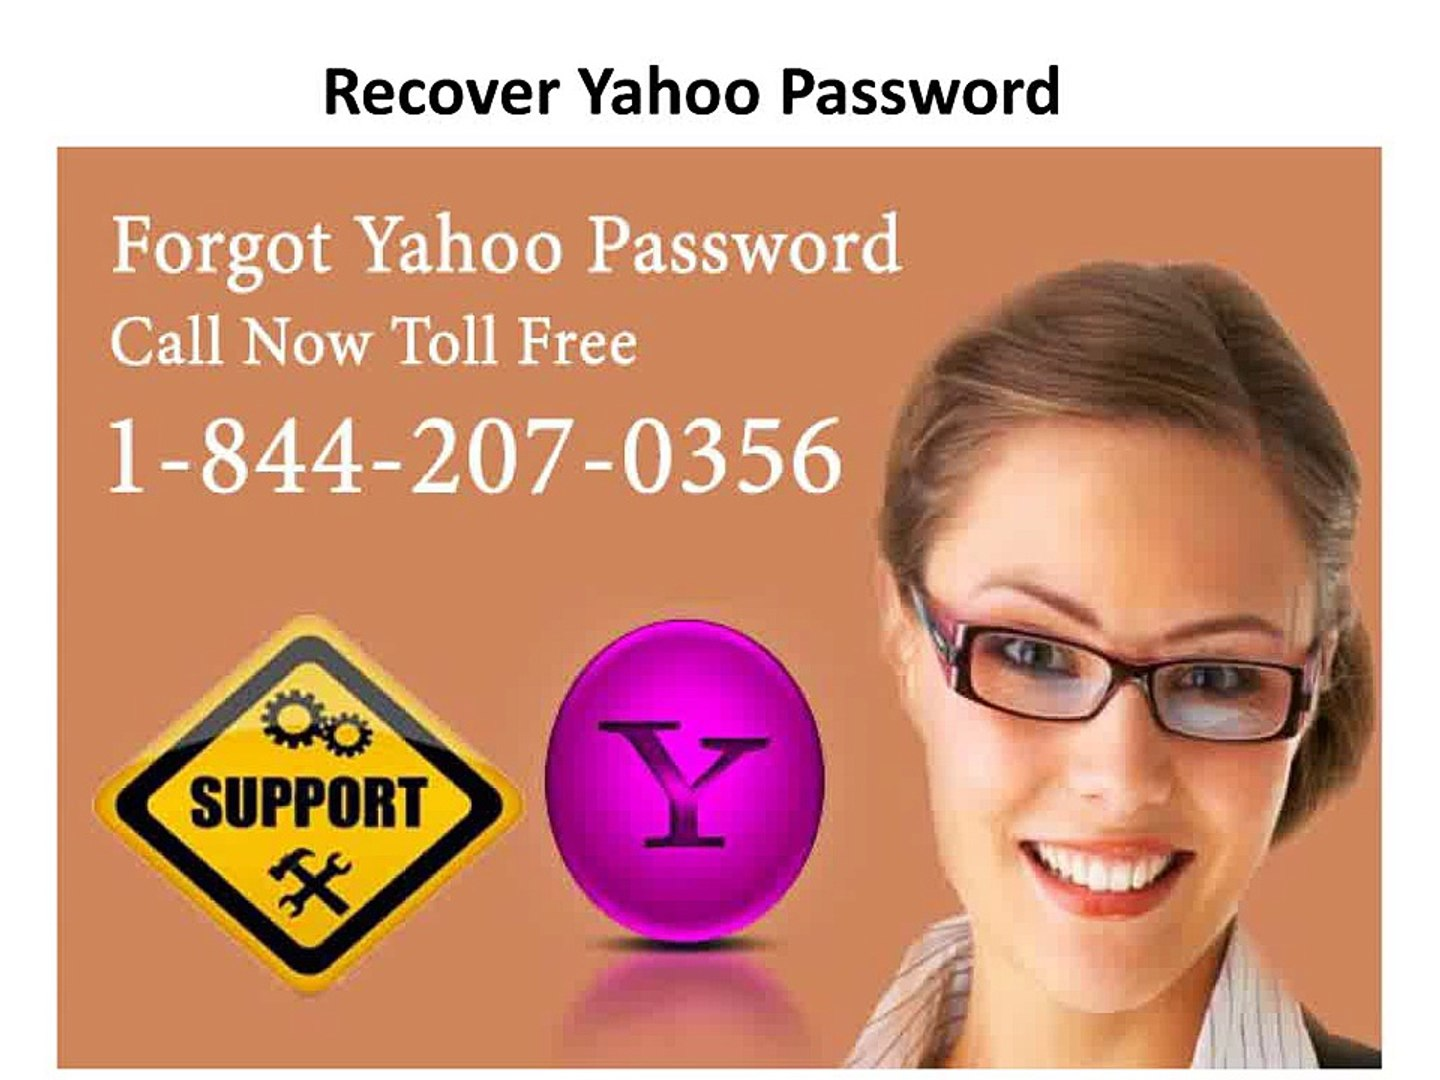 Yahoo Technical Support 1-844-207-0356 Yahoo Forgot Password